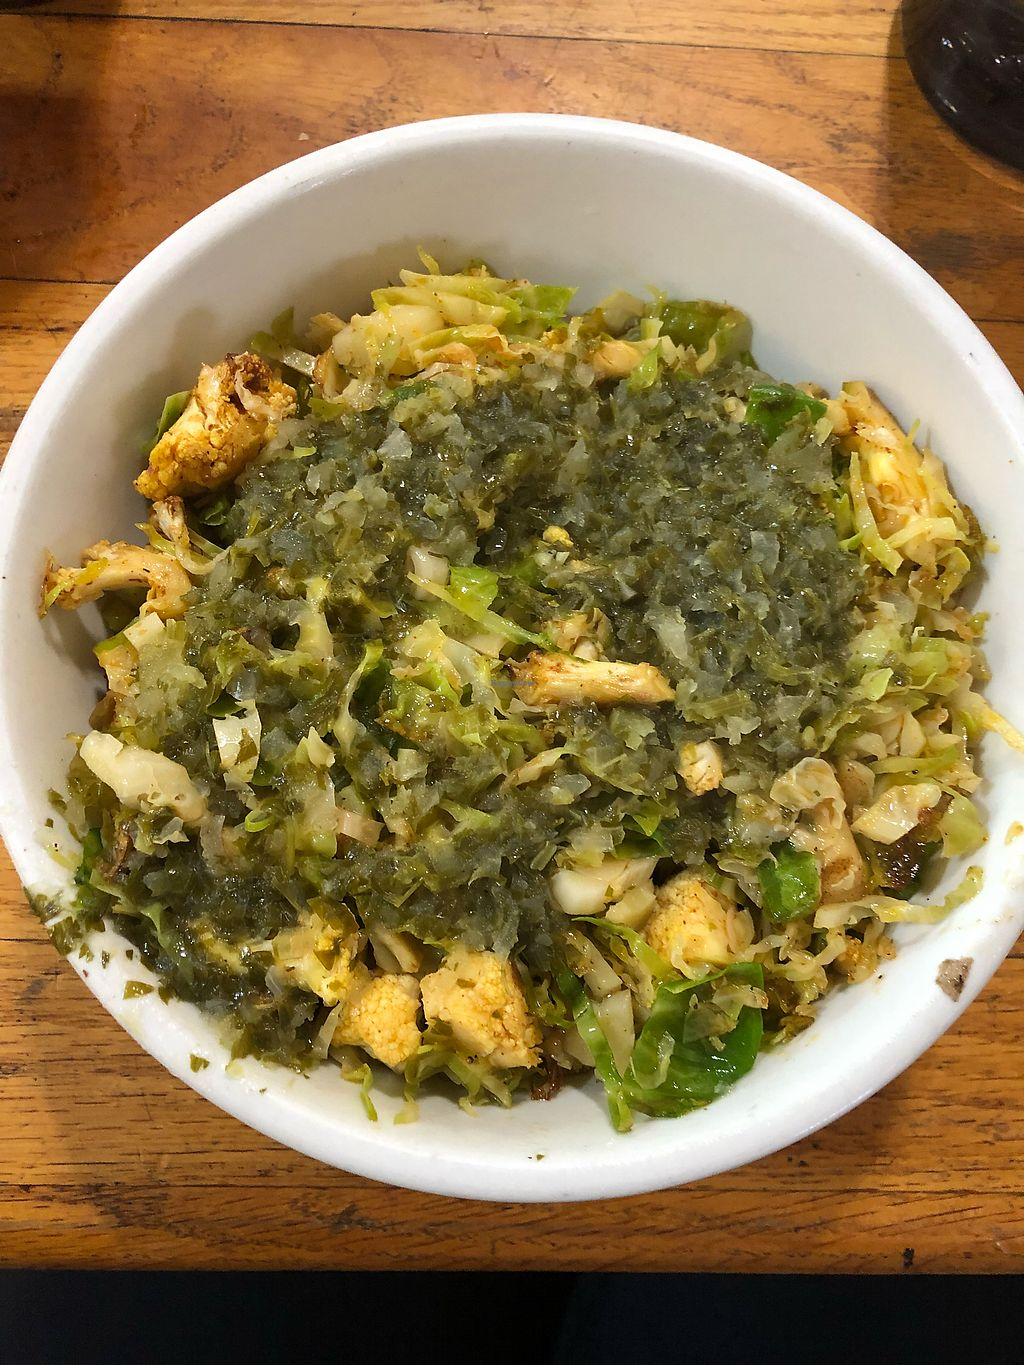 """Photo of The Sentient Bean  by <a href=""""/members/profile/KerryElise"""">KerryElise</a> <br/>Cauli-Brussels bowl. Not the prettiest, but delicious <br/> April 12, 2018  - <a href='/contact/abuse/image/4486/384672'>Report</a>"""